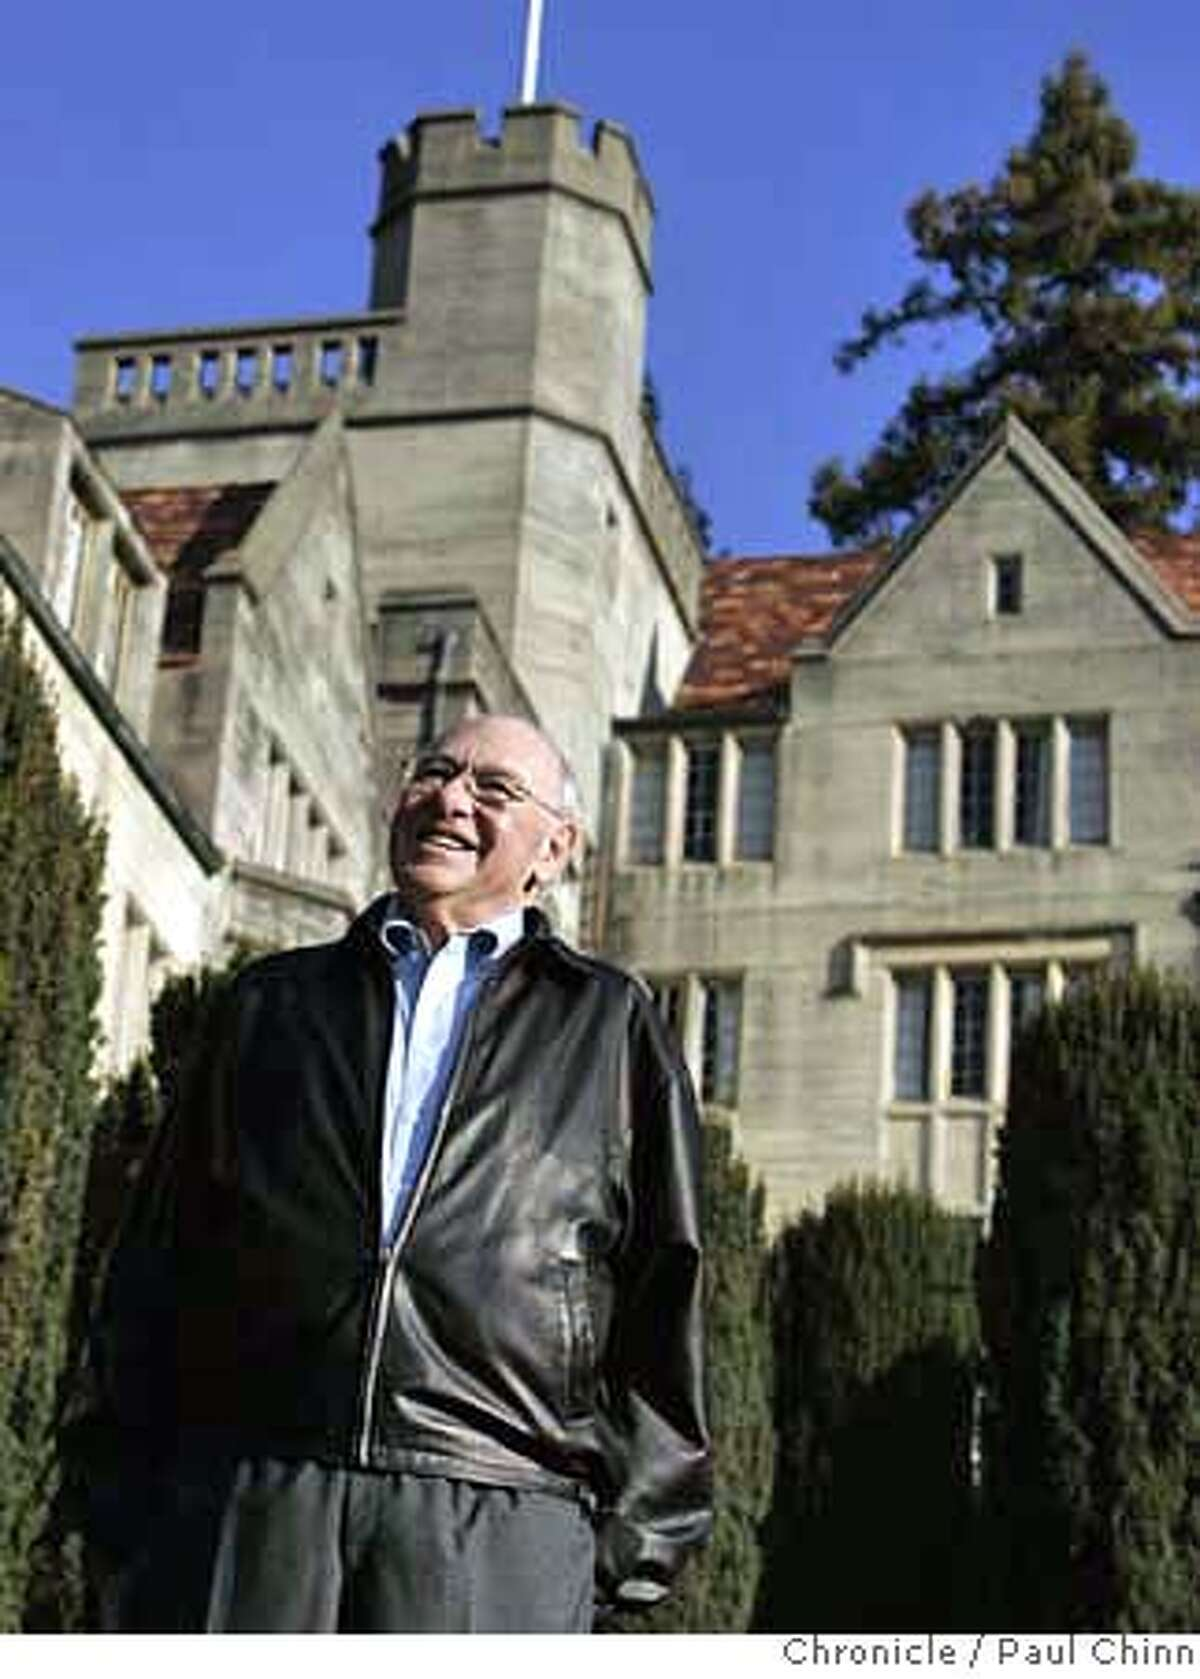 Cal grad Bob Sayles returns to visit Bowles Hall men's freshman dormitory at UC Berkeley on Wednesday, Jan. 24, 2007. Cal's Haas School of Business is eyeing the castle-like dorm to use for an executive education program, a plan which has angered many alumni and former residents known as Bowlesmen. Sayles a member of the Class of 1952, is leading the charge for the Bowlesmen. PAUL CHINN/The Chronicle **Bob Sayles MANDATORY CREDIT FOR PHOTOGRAPHER AND S.F. CHRONICLE/NO SALES - MAGS OUT